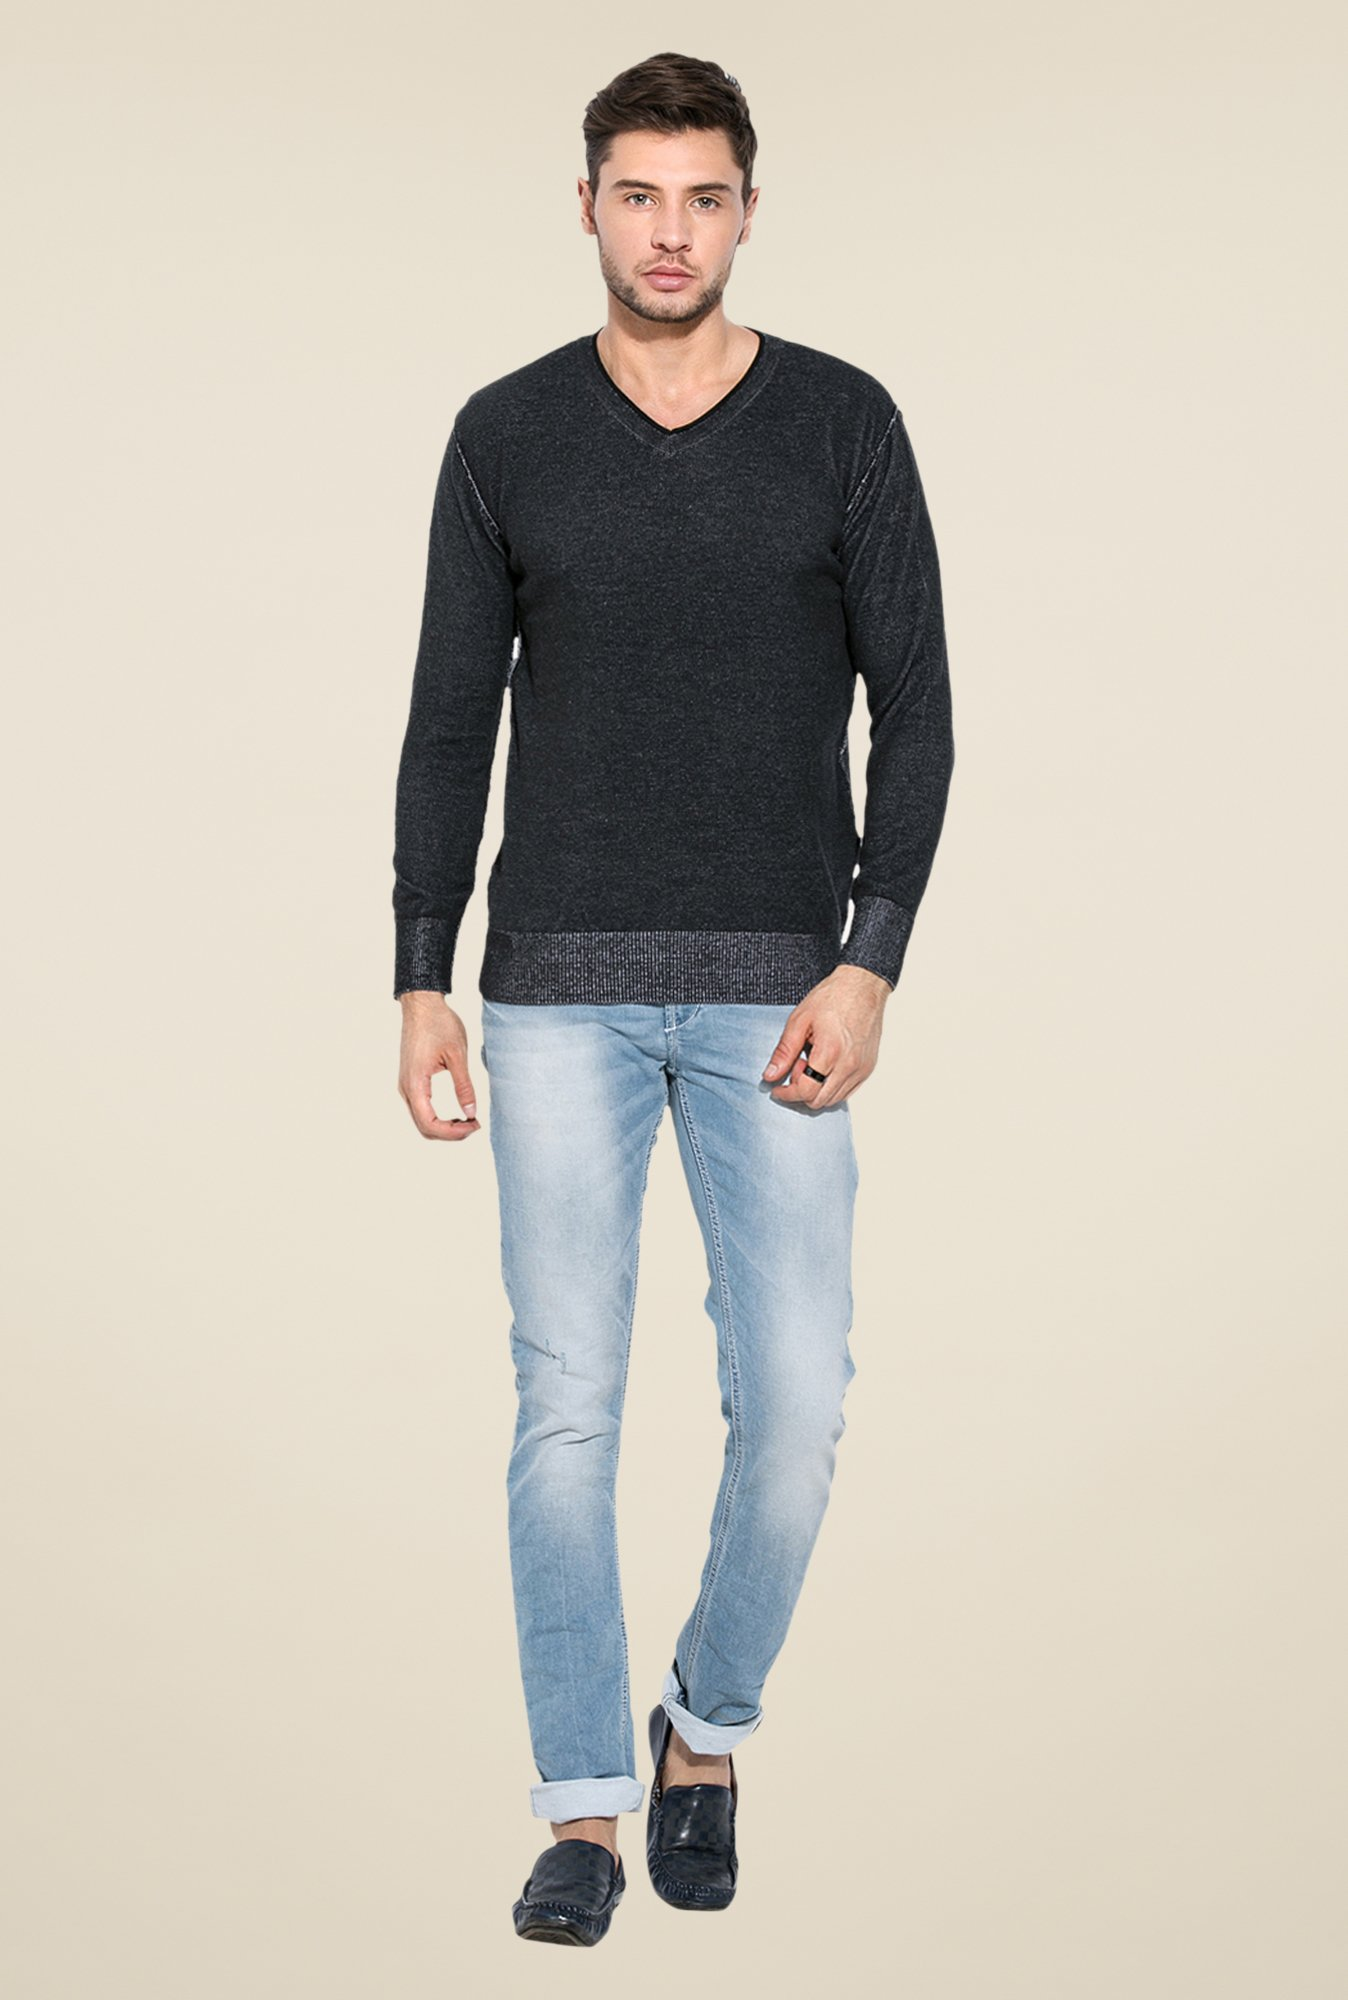 Mufti Black V-Neck Sweatshirt